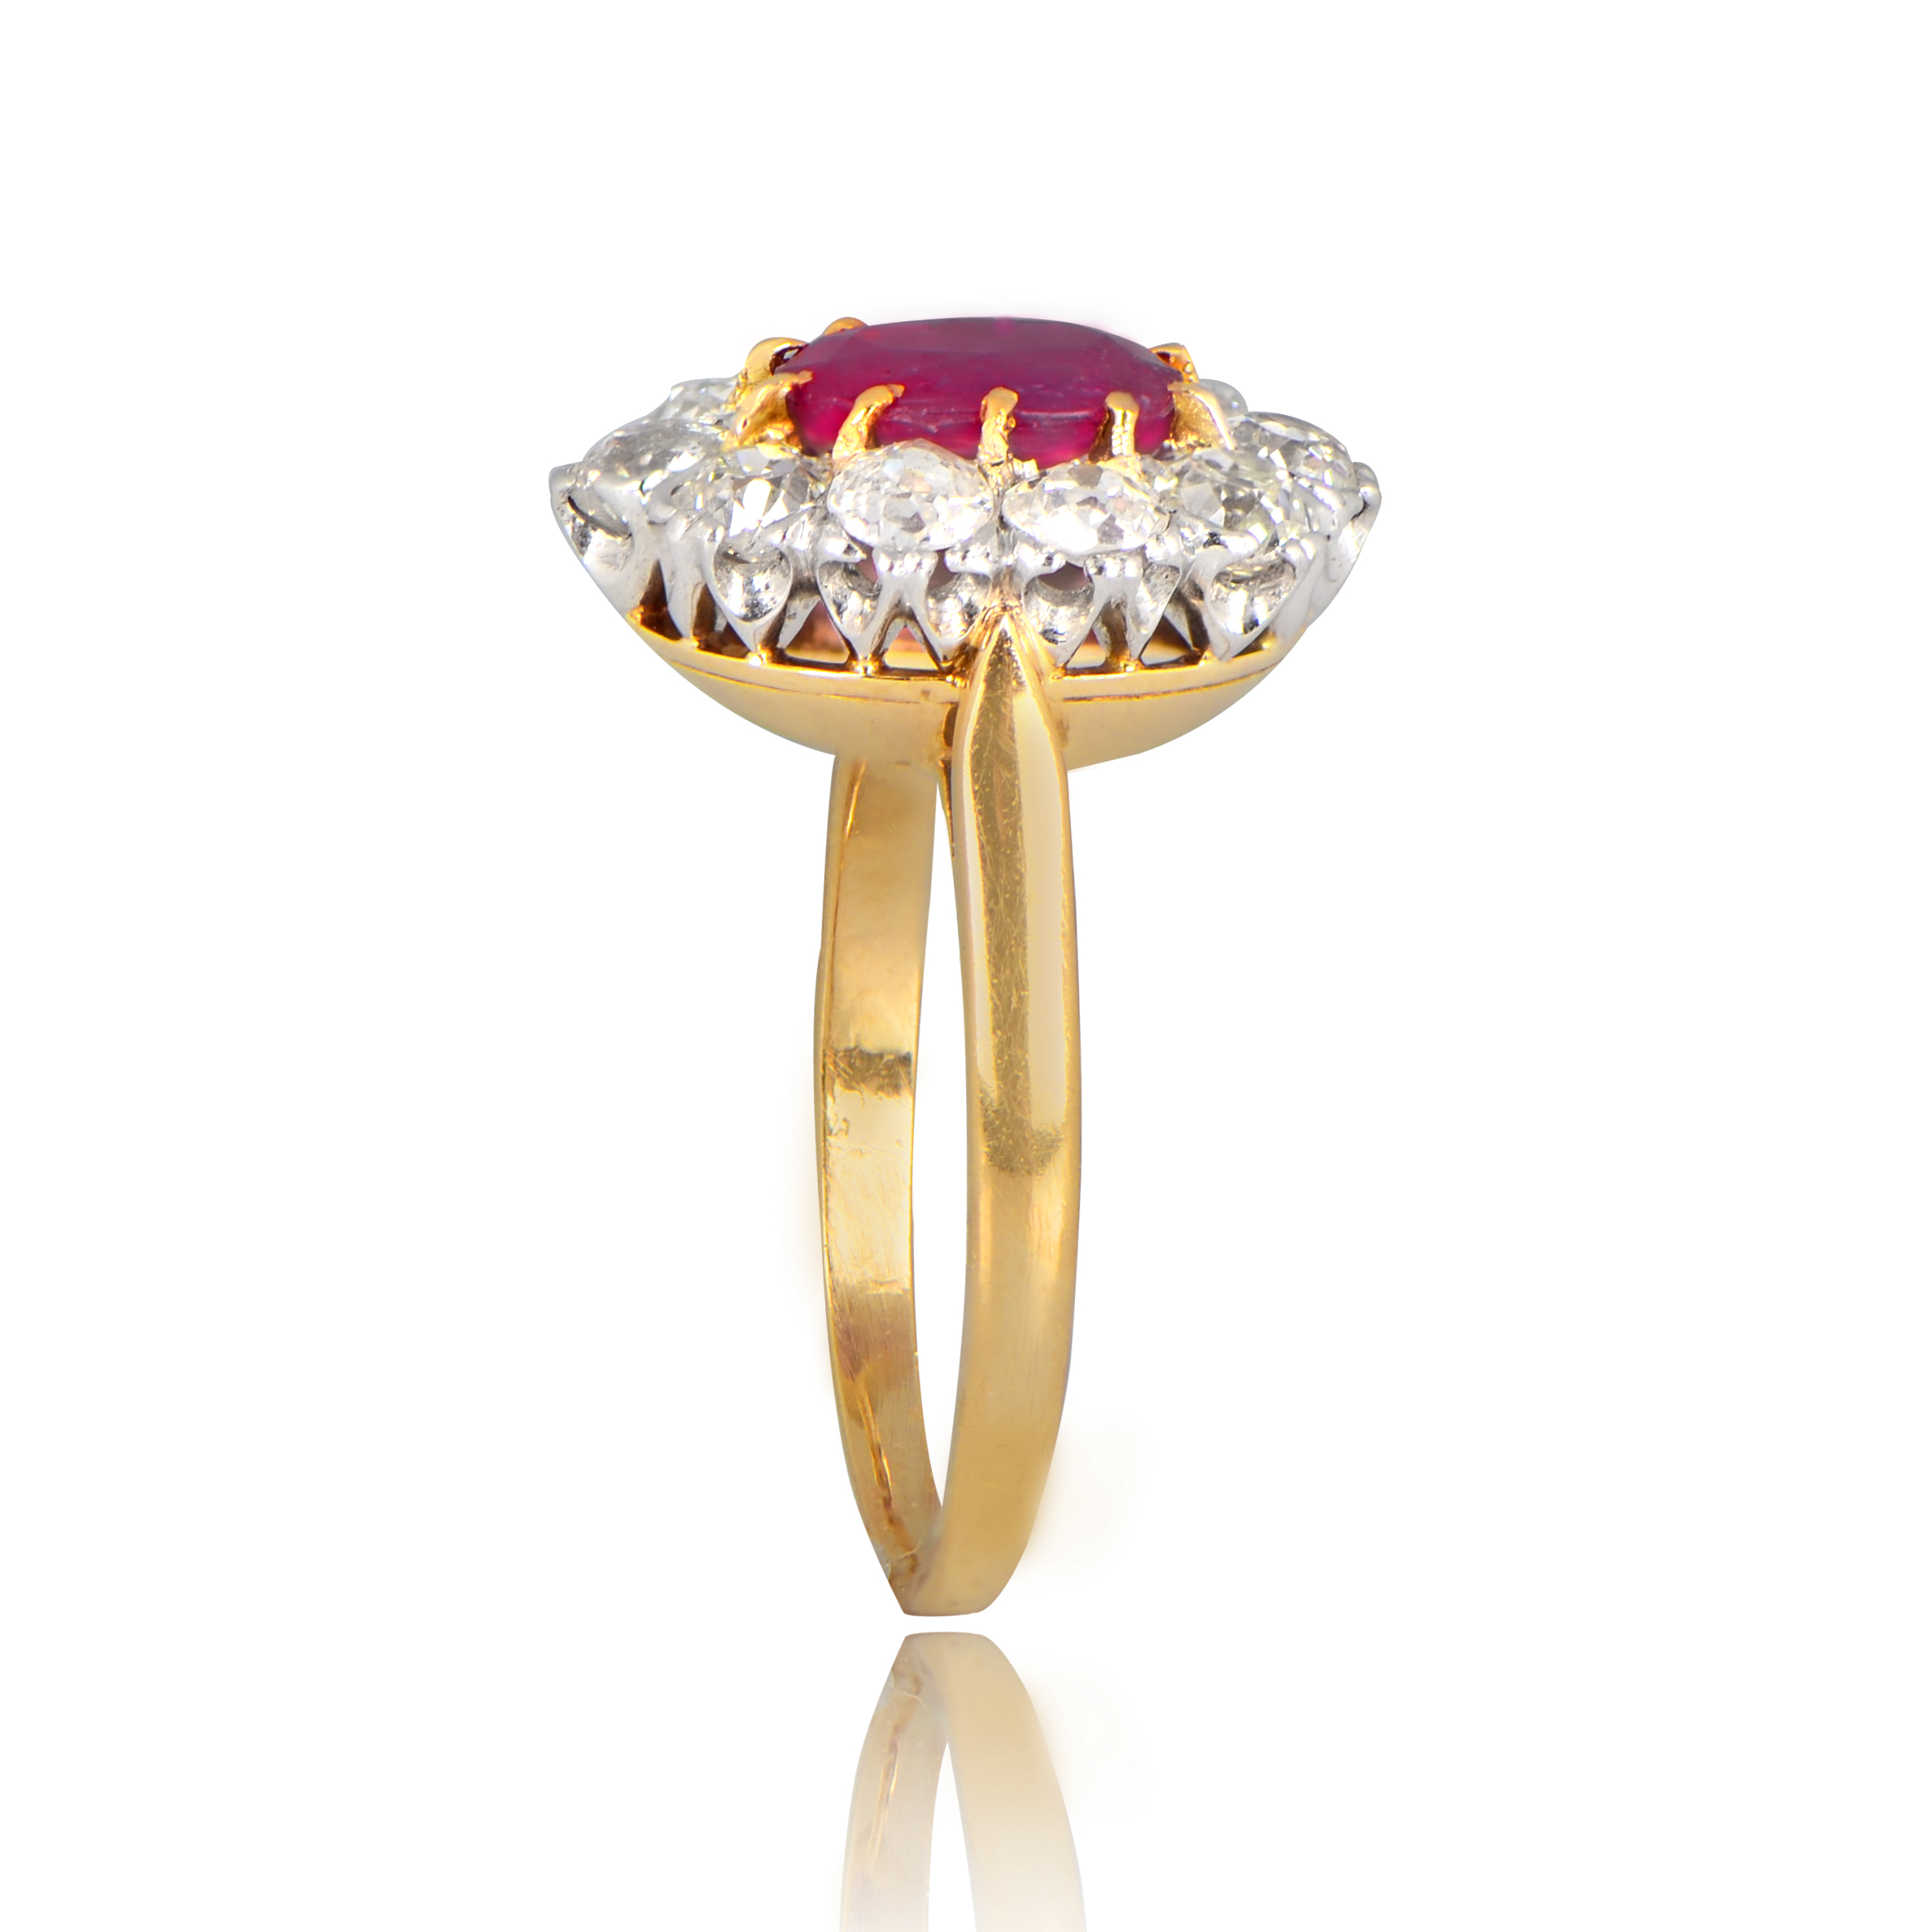 taffin gold engagement product ring ct sapphire false subsampling givenchy rose de james and with upscale amber scale crop shop yellow by rings ceramic